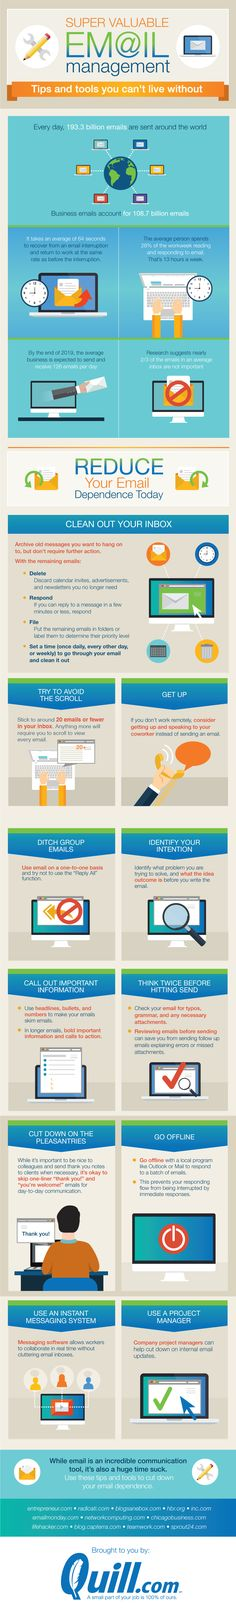 Super Valuable Email Management #Infographic #EmailManagement